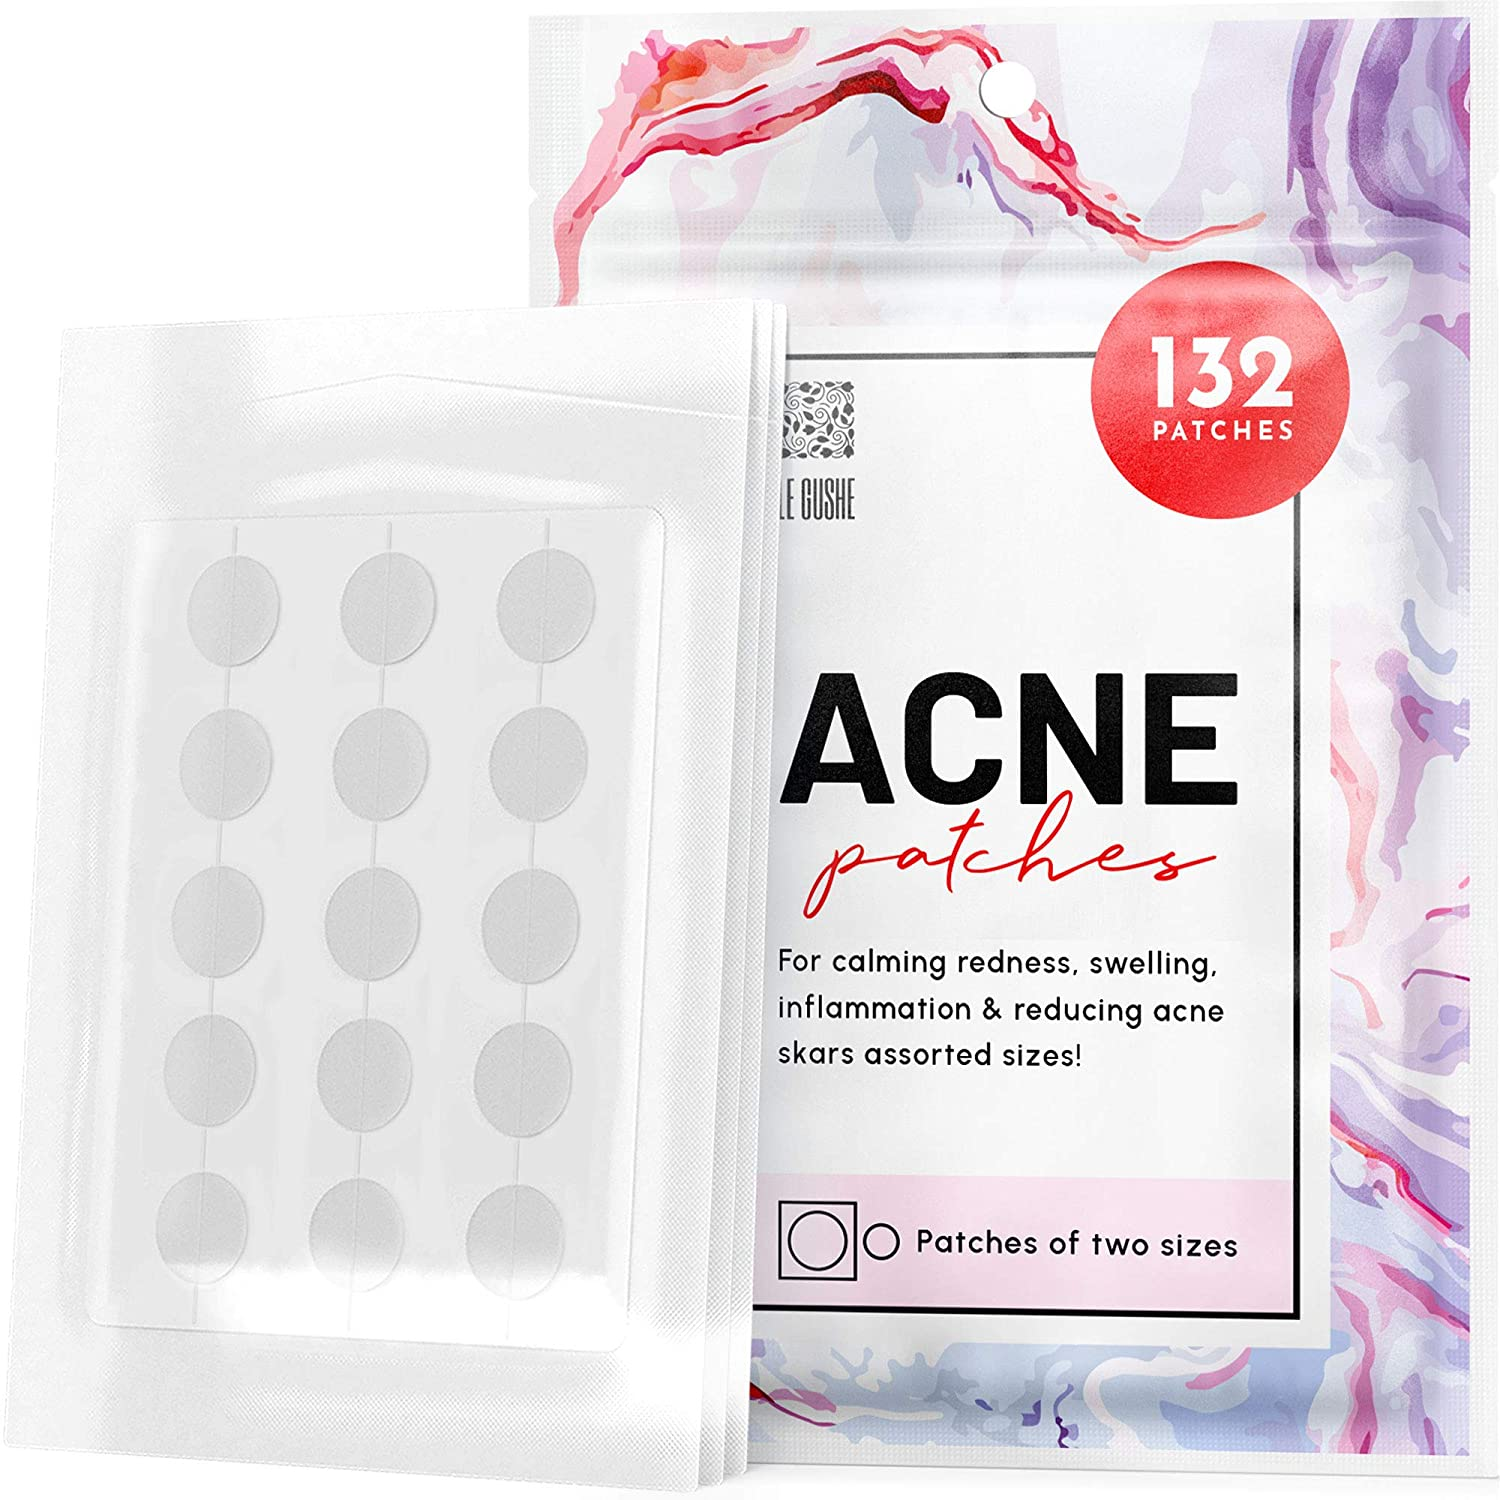 Hydrocolloid Pimple Patches Blemish Protective Cover Absorbing Spot Treatment Hydrocolloid Dressing Zit Sticker Healing Dot